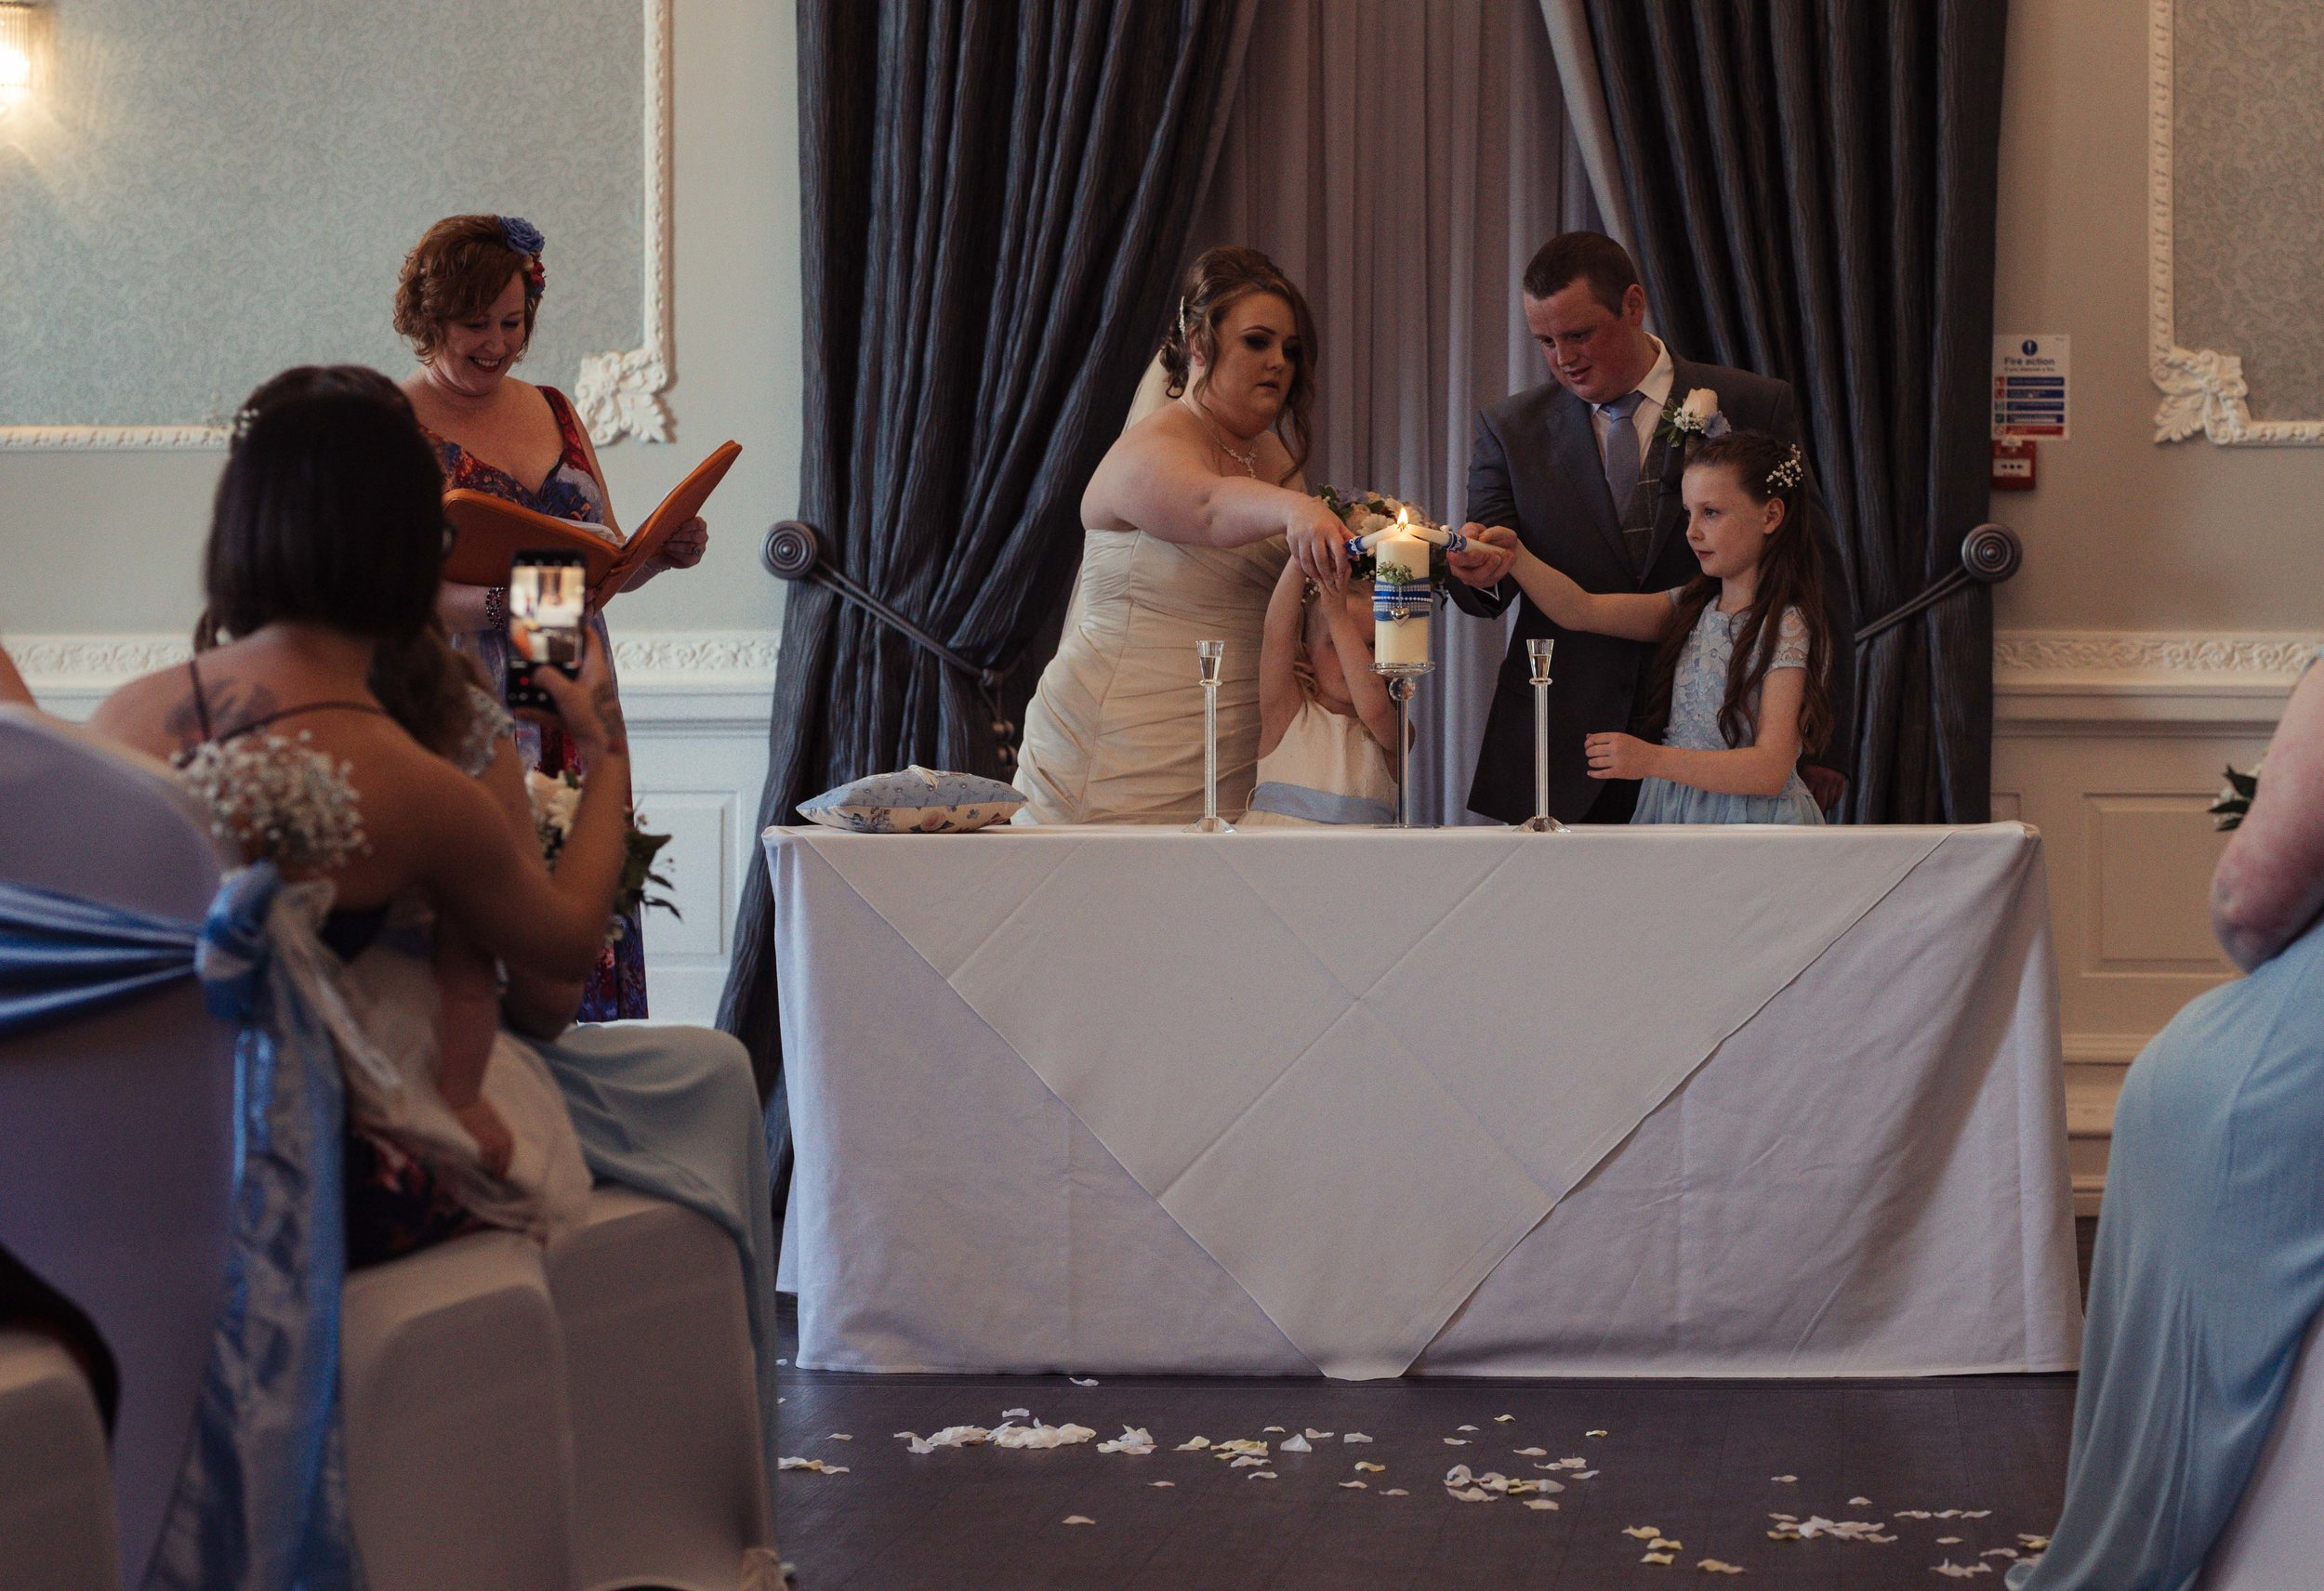 The bride and groom and their two children light candles during the wedding ceremony